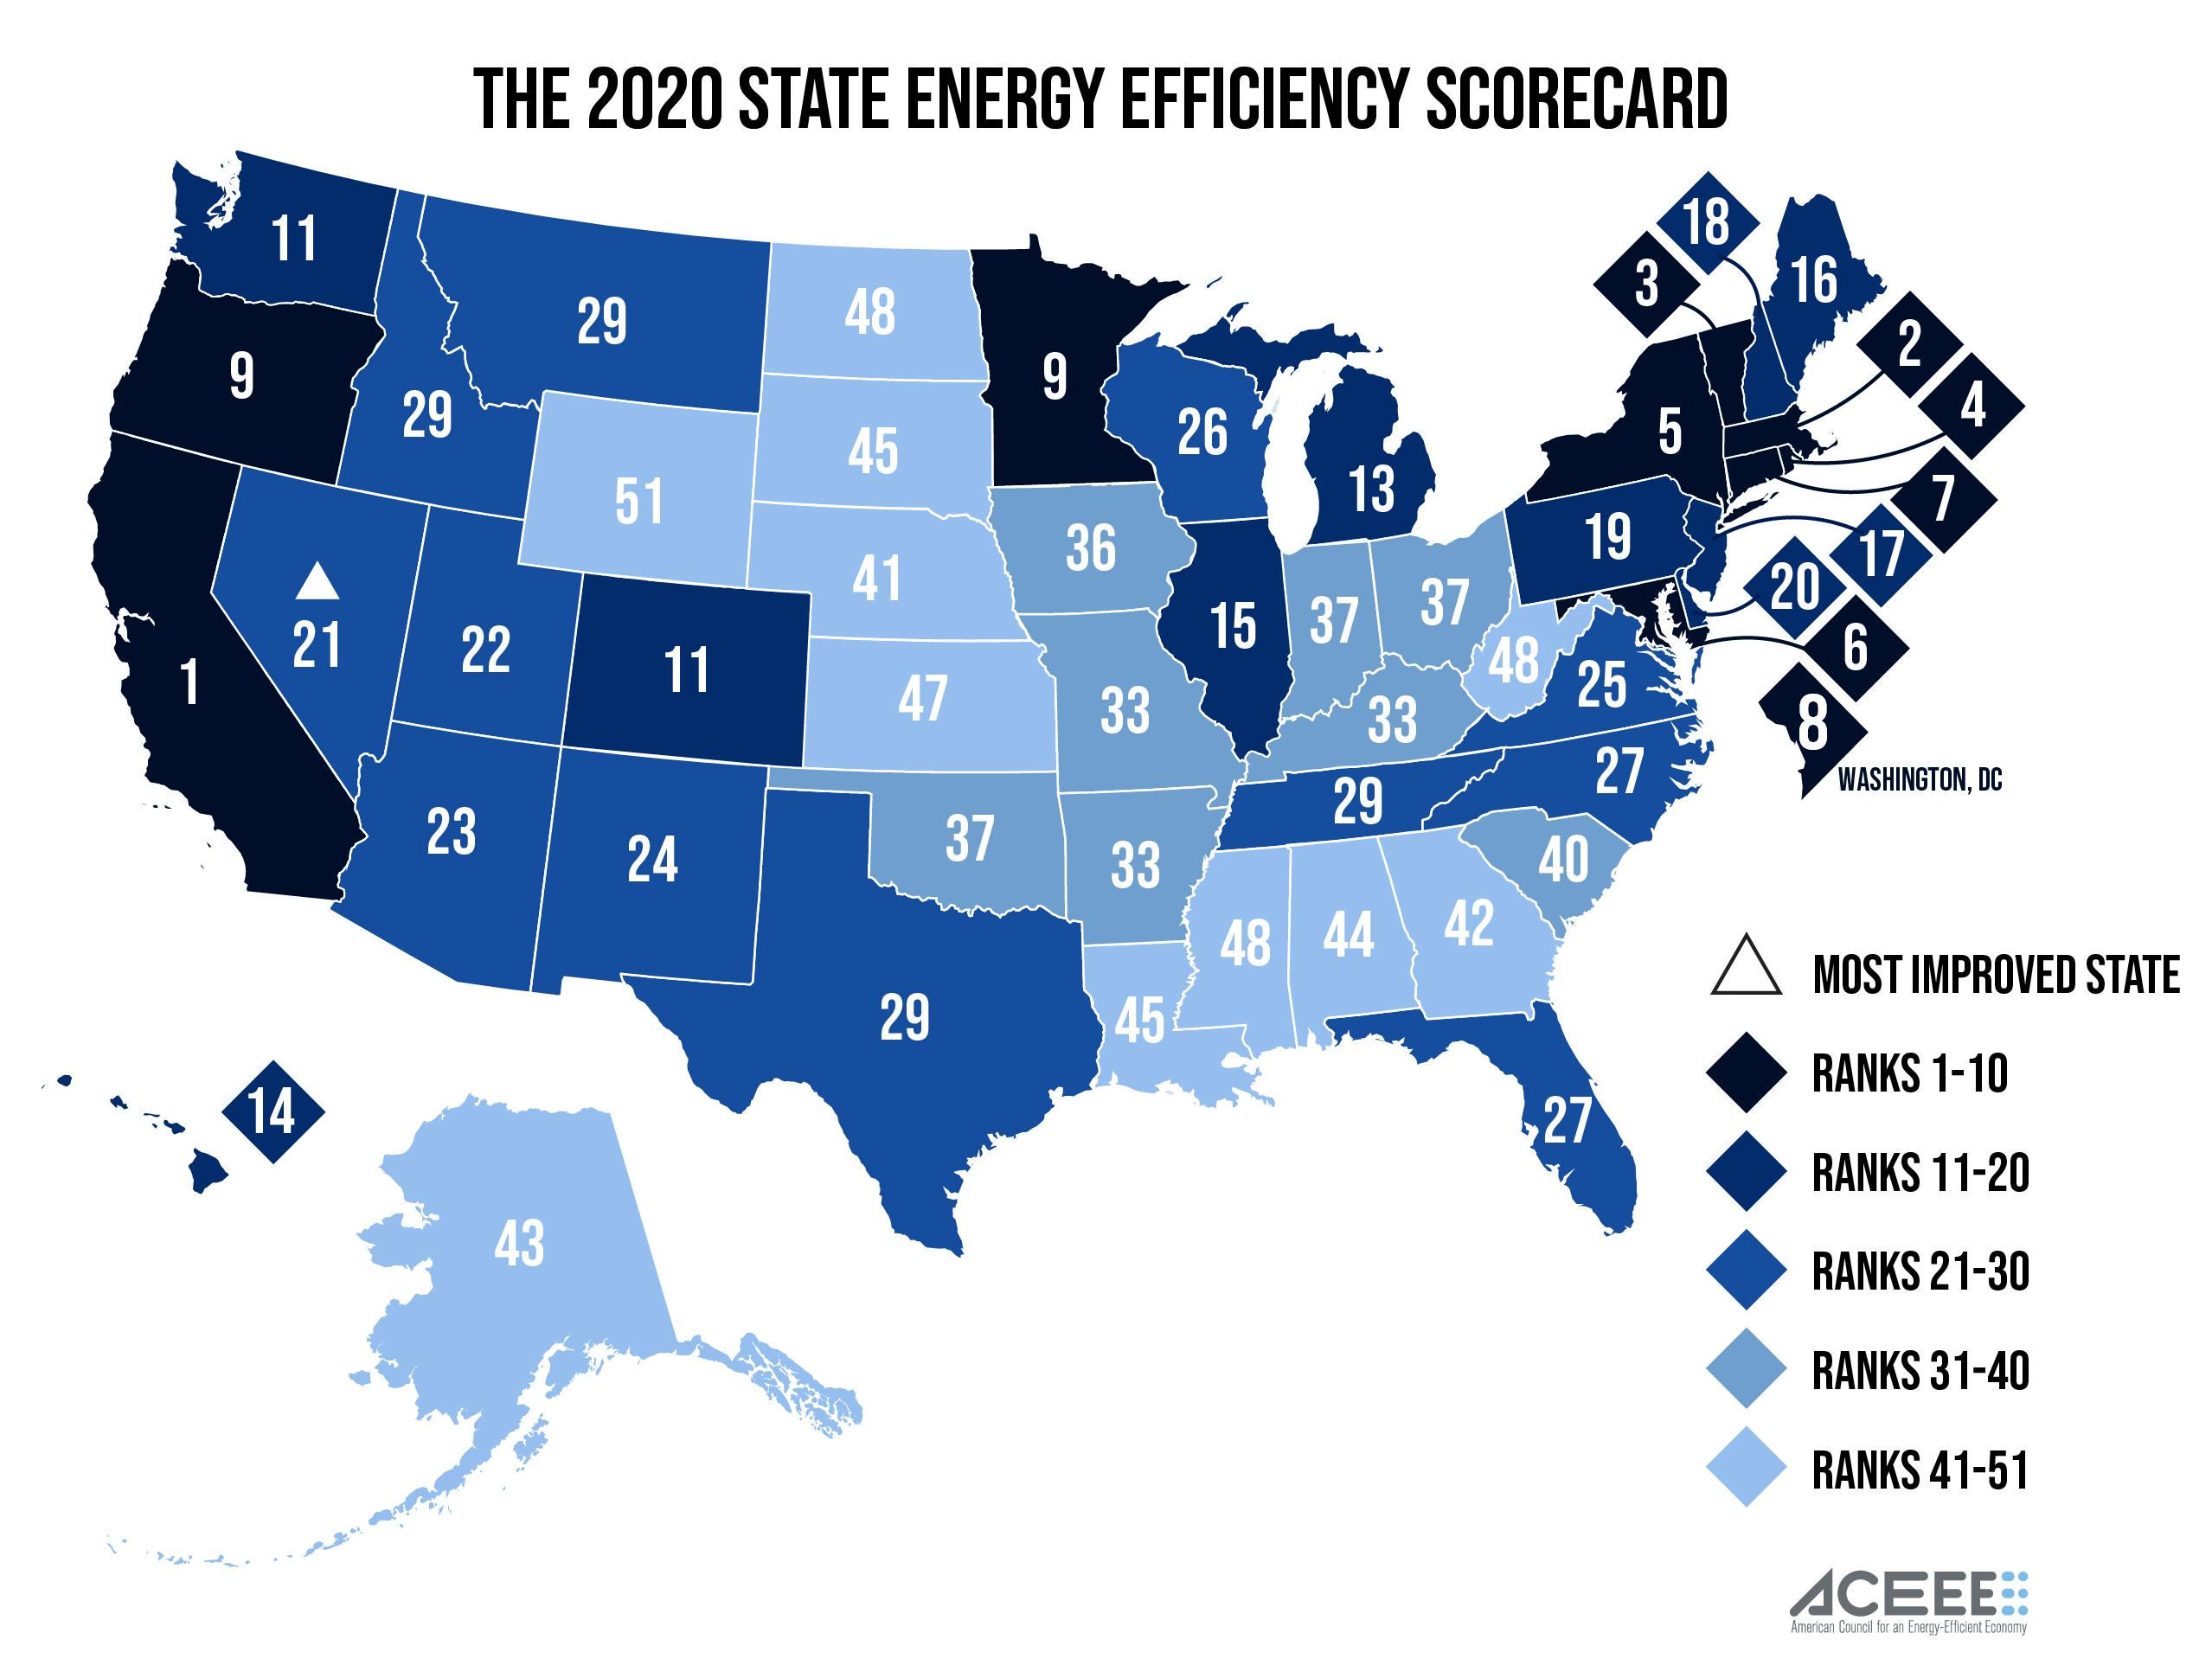 ACEEE 2020 Energy Efficiency Scorecard map